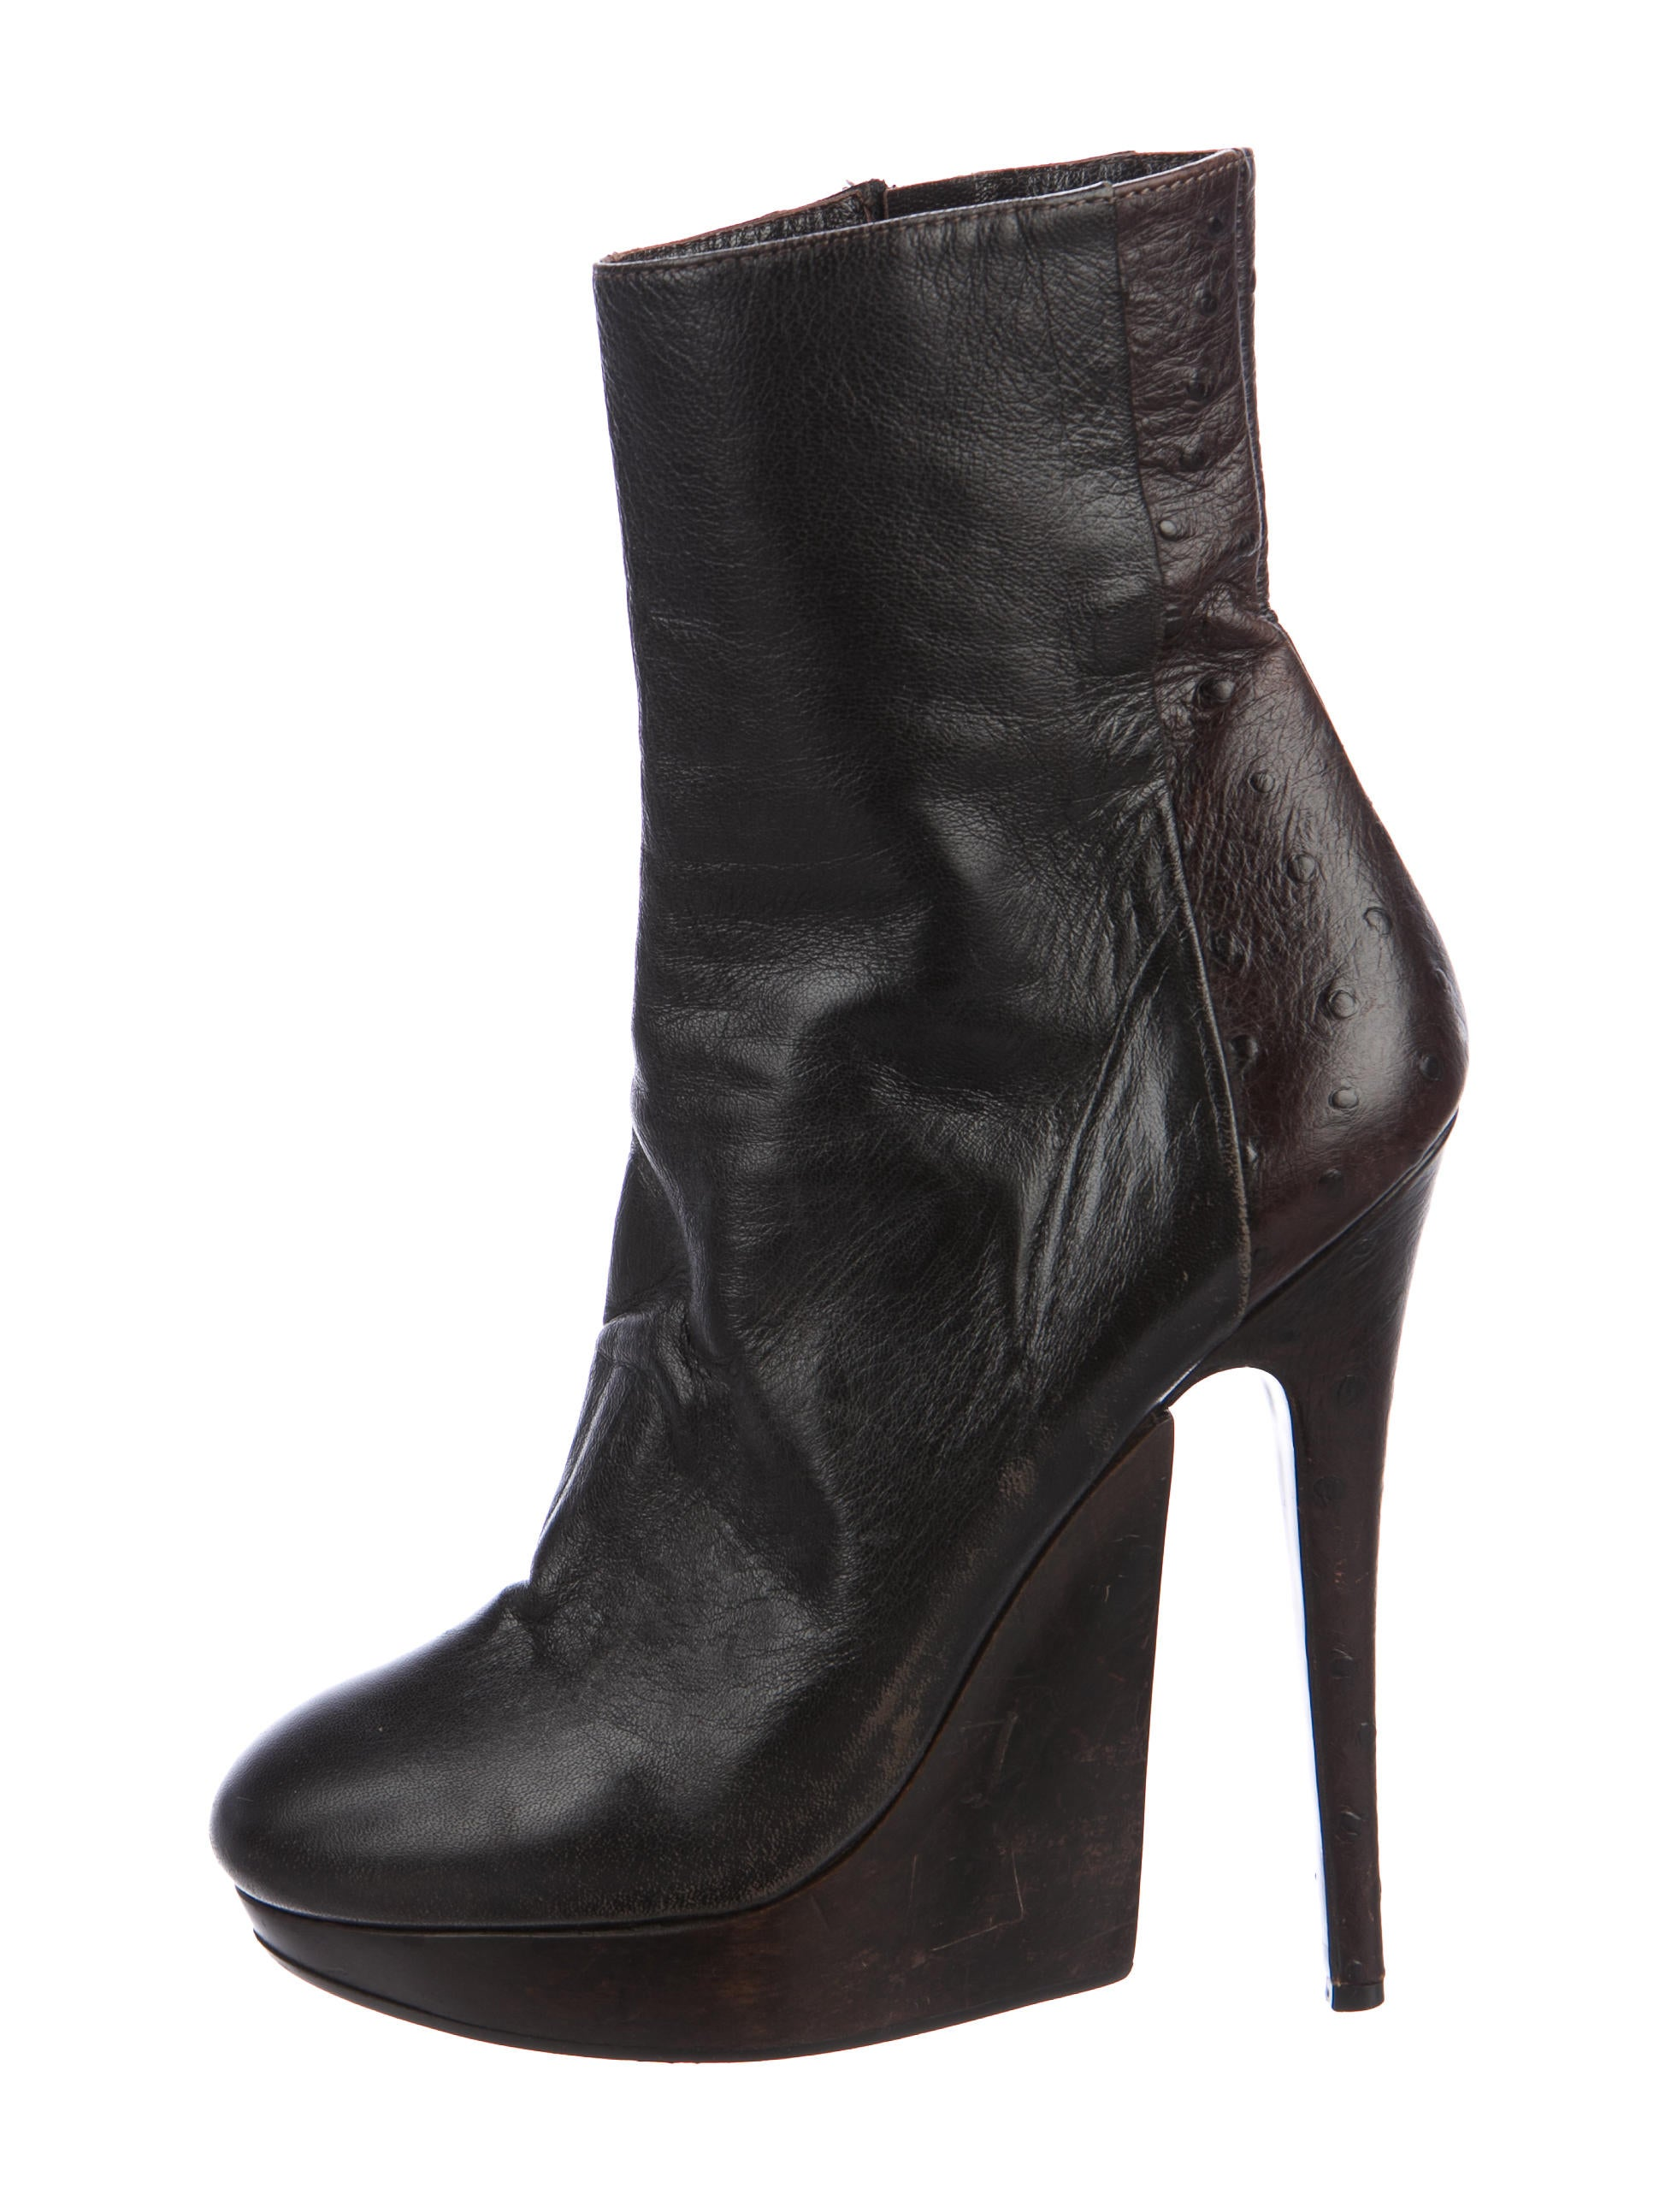 discount browse buy cheap amazing price Haider Ackermann Round-Toe Embossed Boots 35ZGQoA